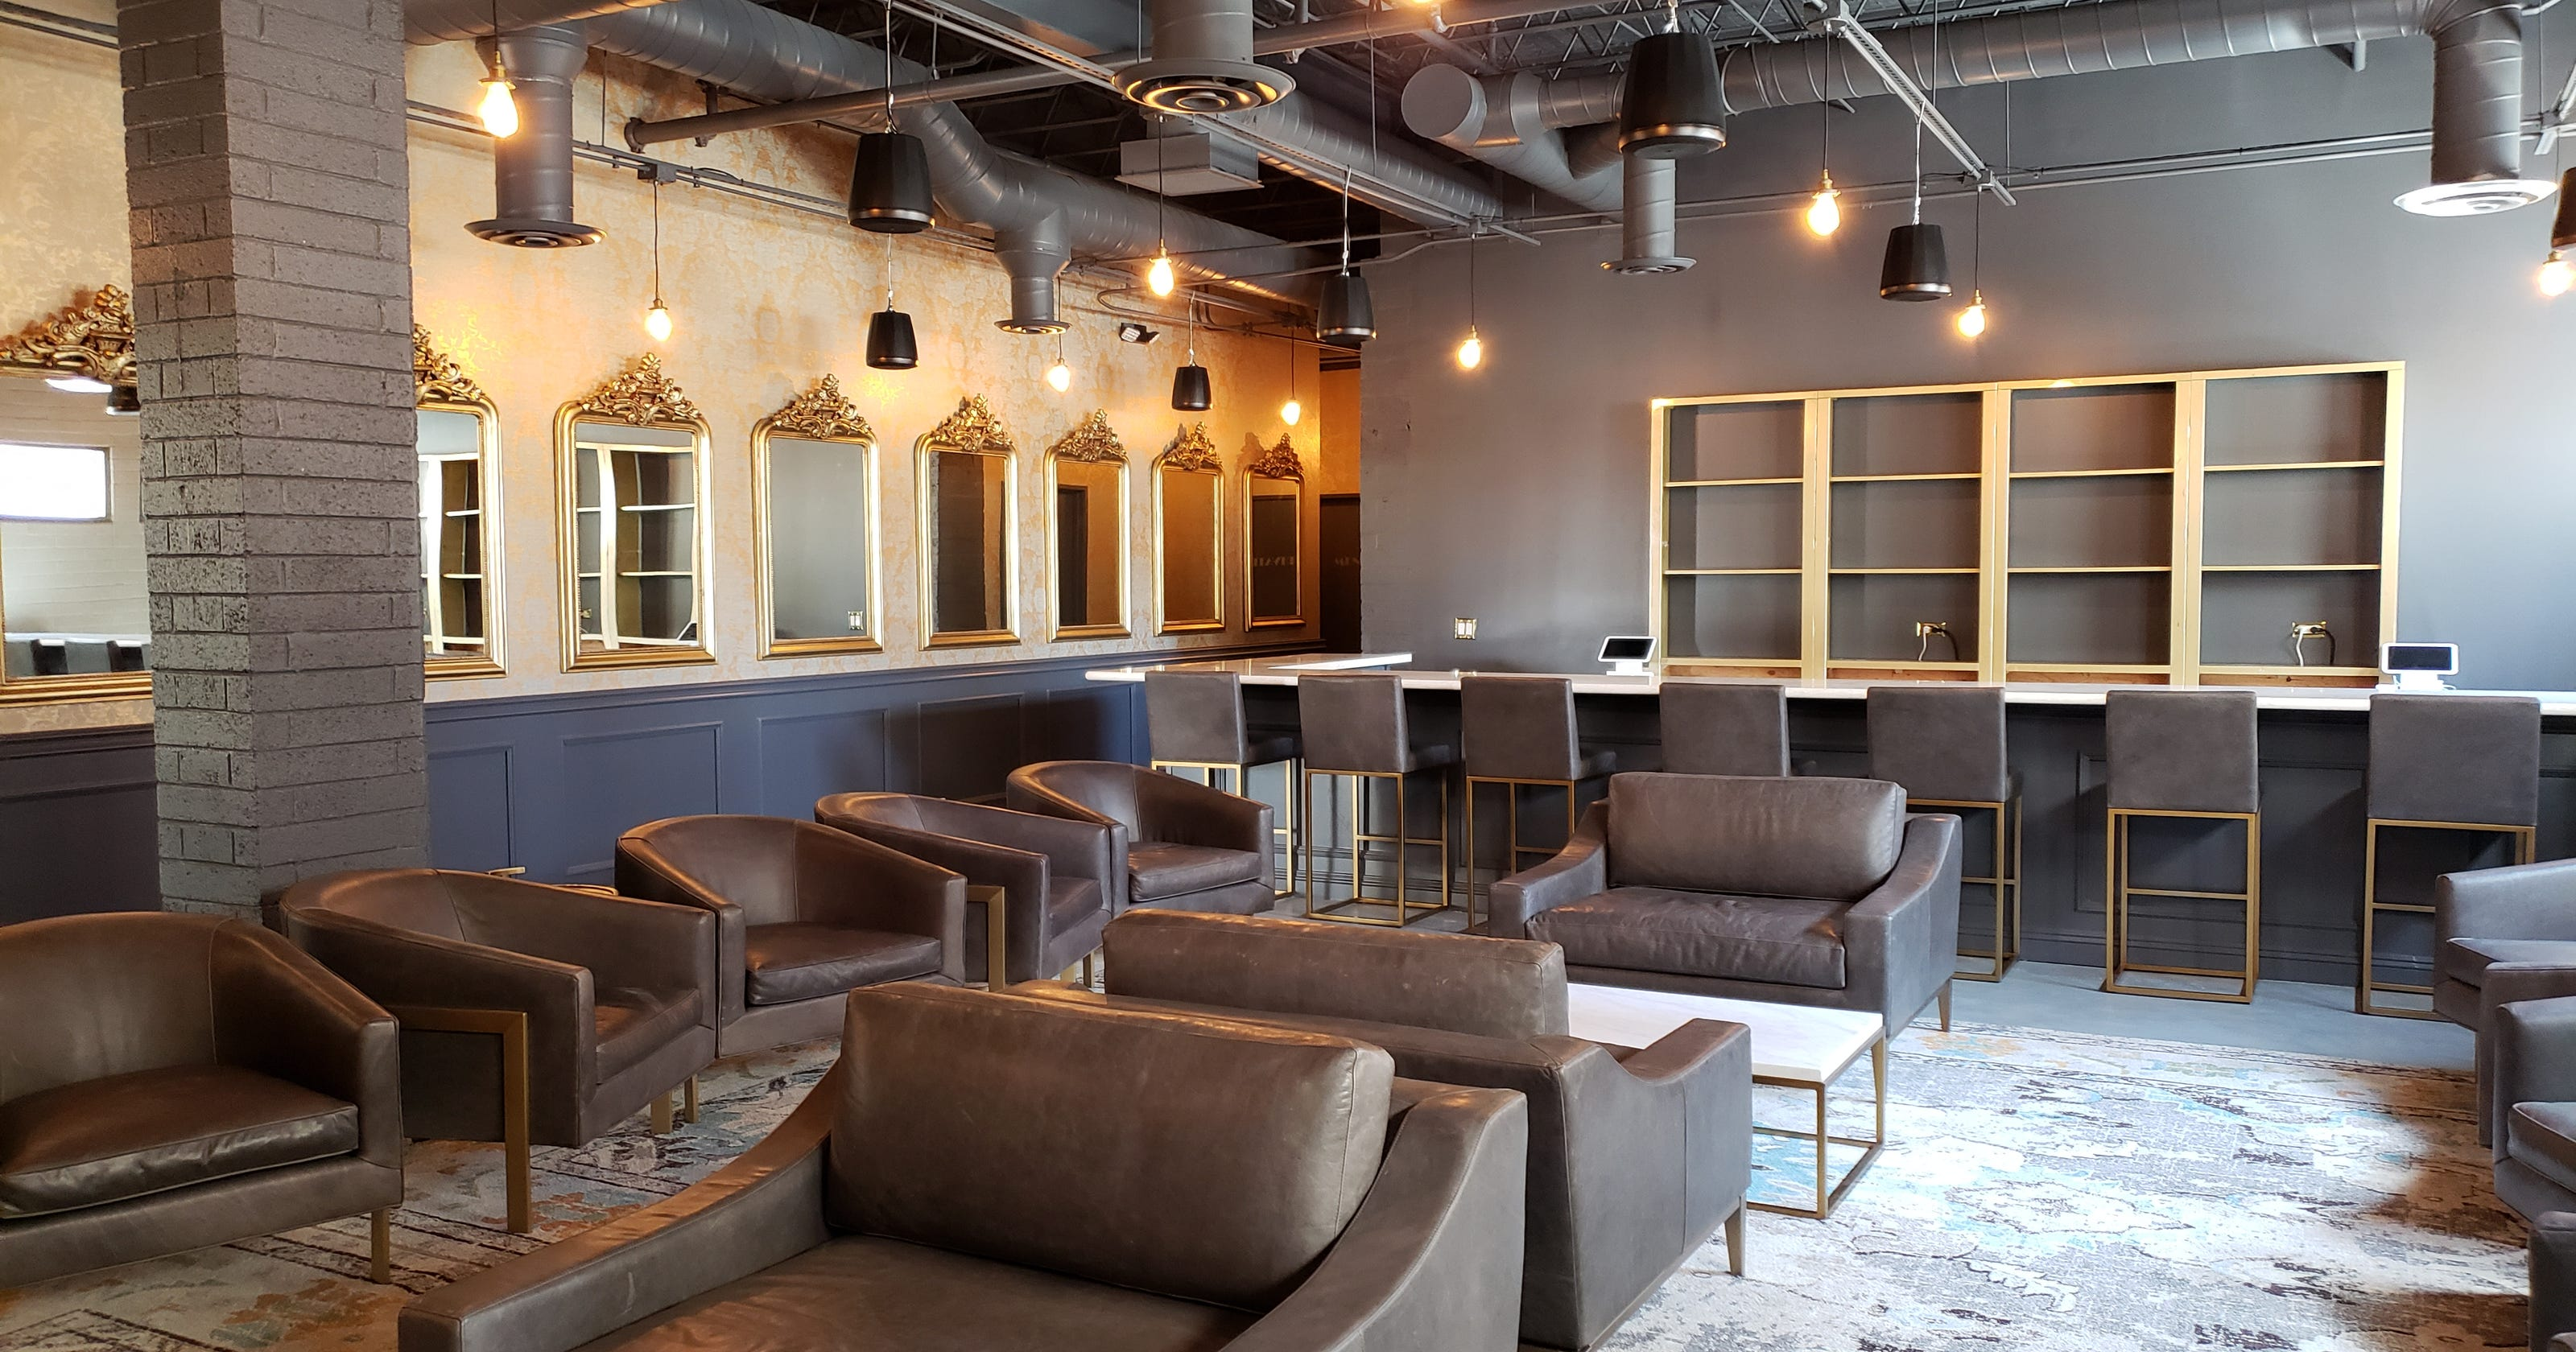 M O B  Social Club, members-only bar and club, opens in Phoenix